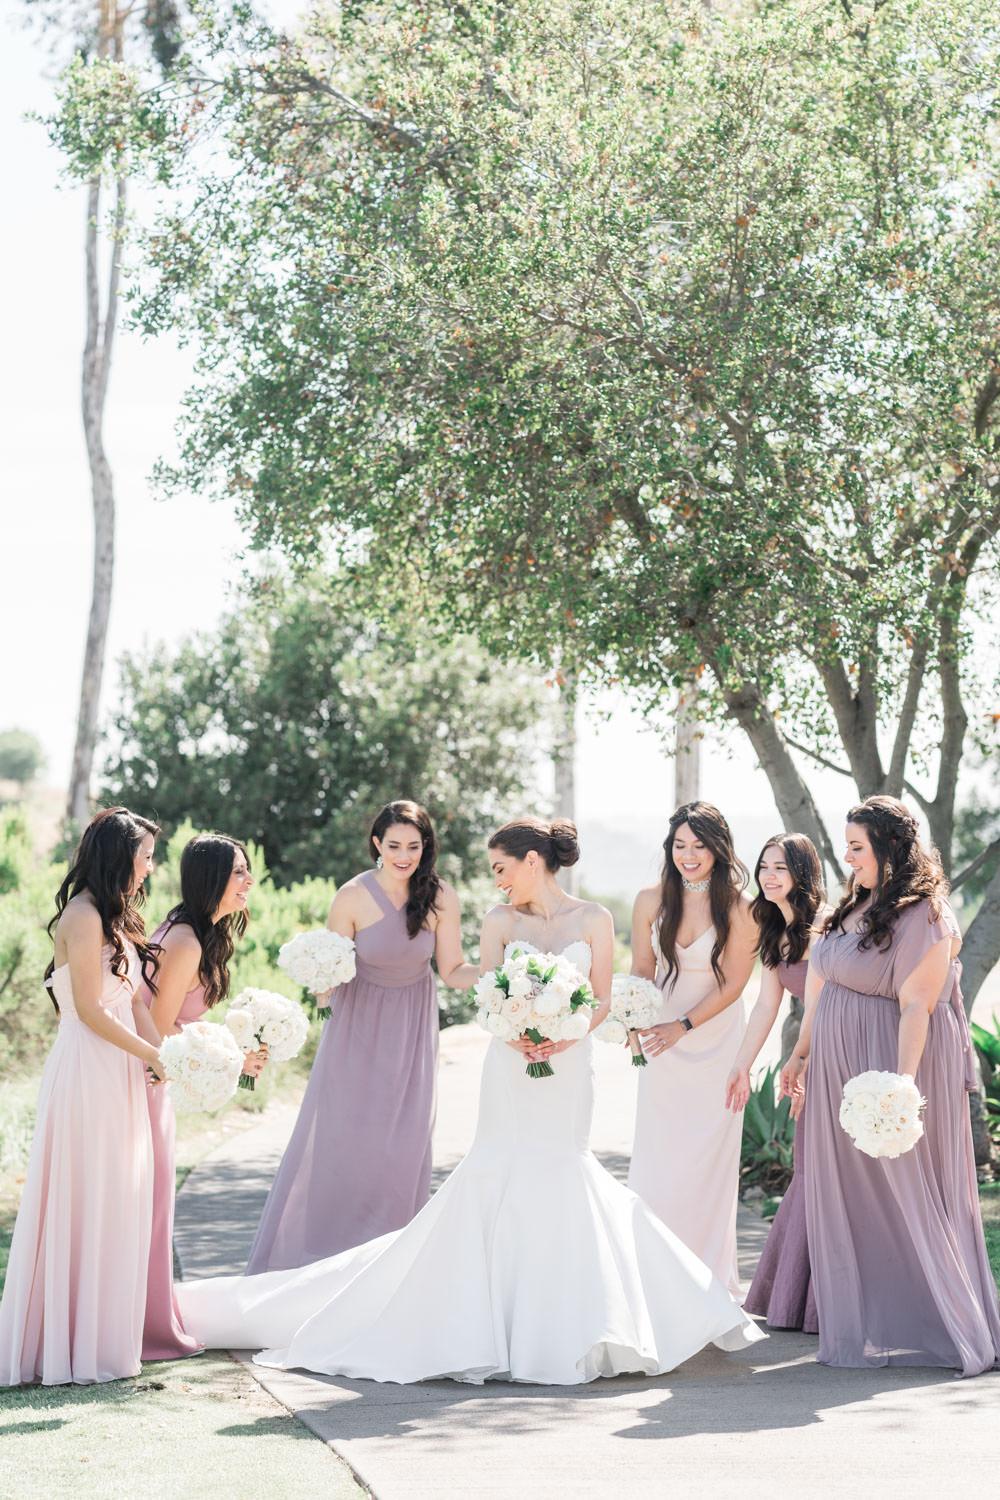 Mauve and lavender bridesmaids gown, Bride and bridesmaids fixing her gown, Santalux Club wedding reception, Cavin Elizabeth Photography